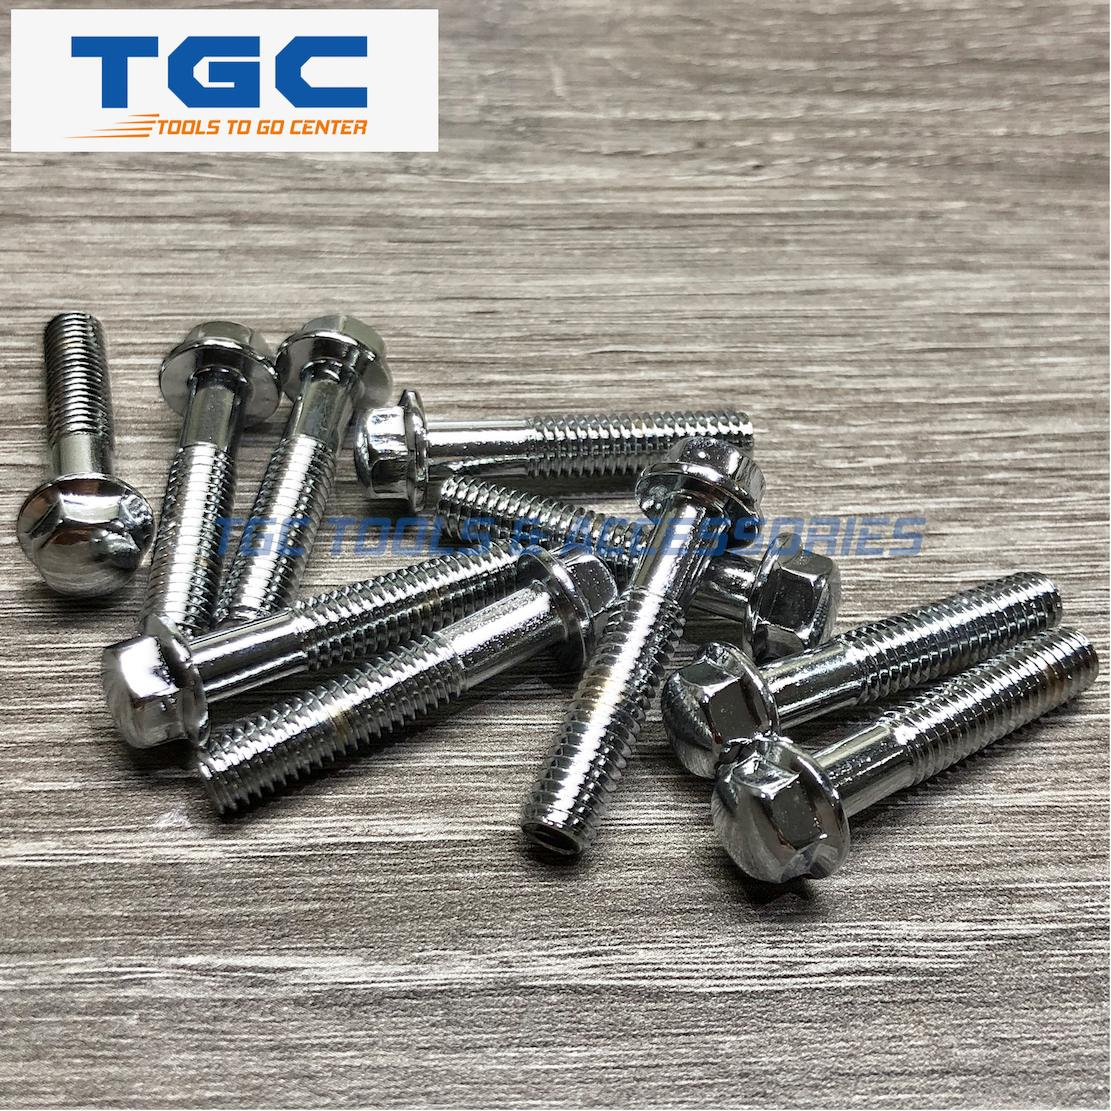 Chrome Flange Bolt M6 X 30mm (8mm Head) 10 Pcs For Motorcycle Accessories By Tgc Tools & Accessories.